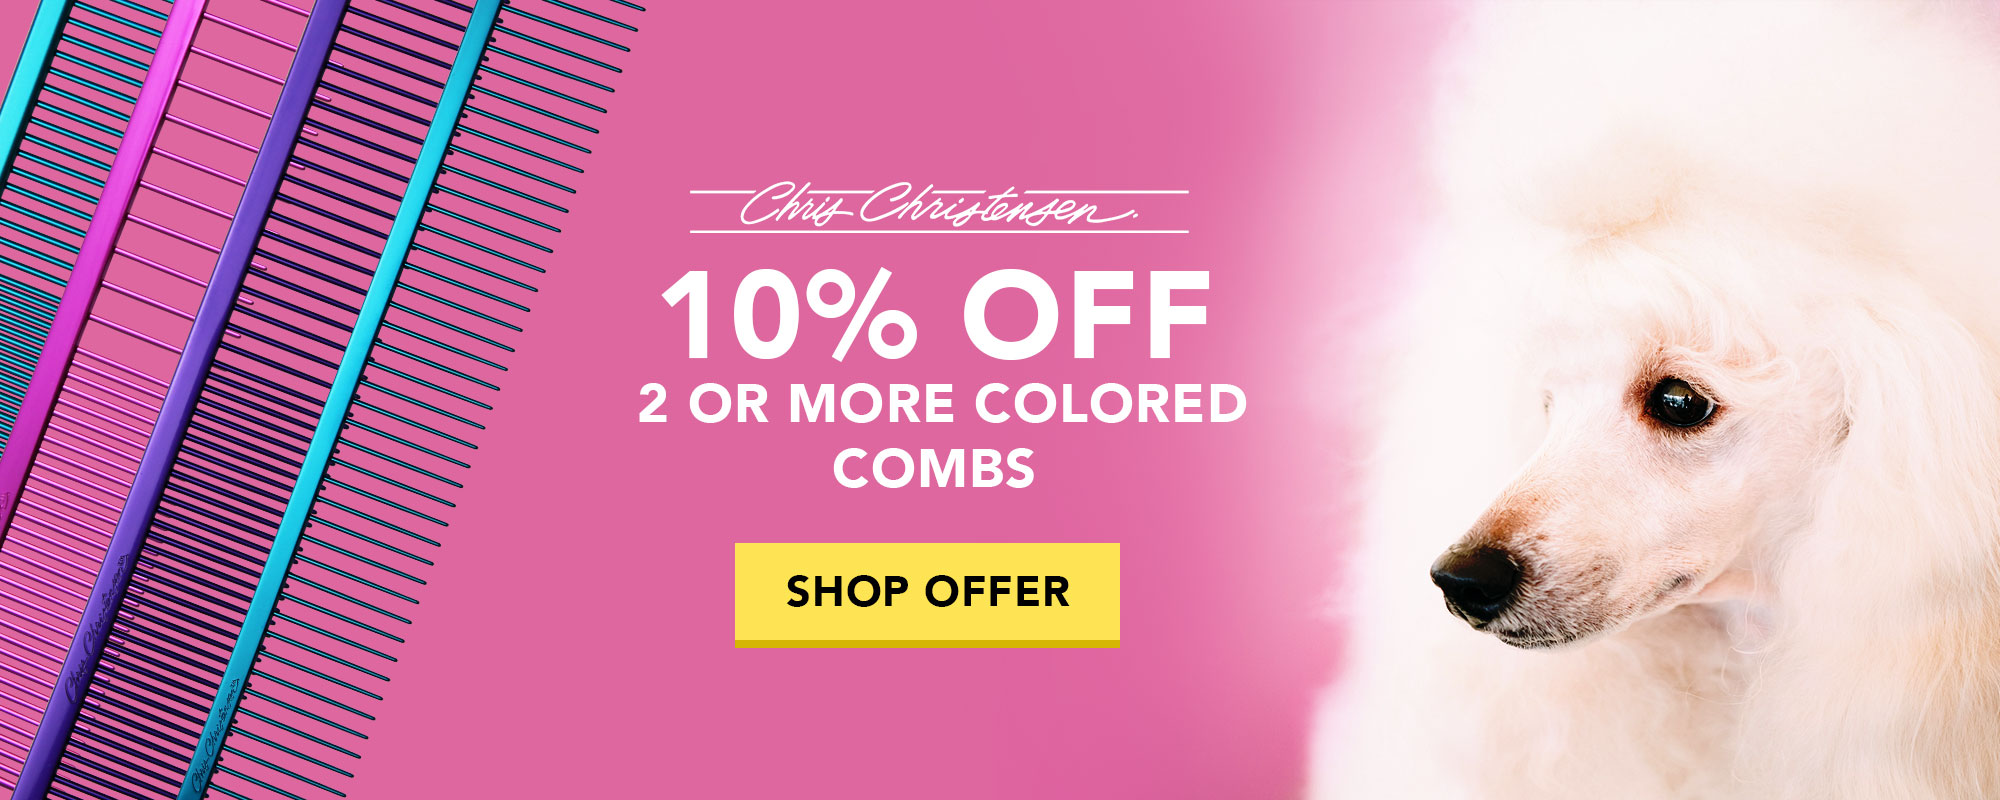 10% Off 2 or more Chris Christensen Combs - Shop Offer